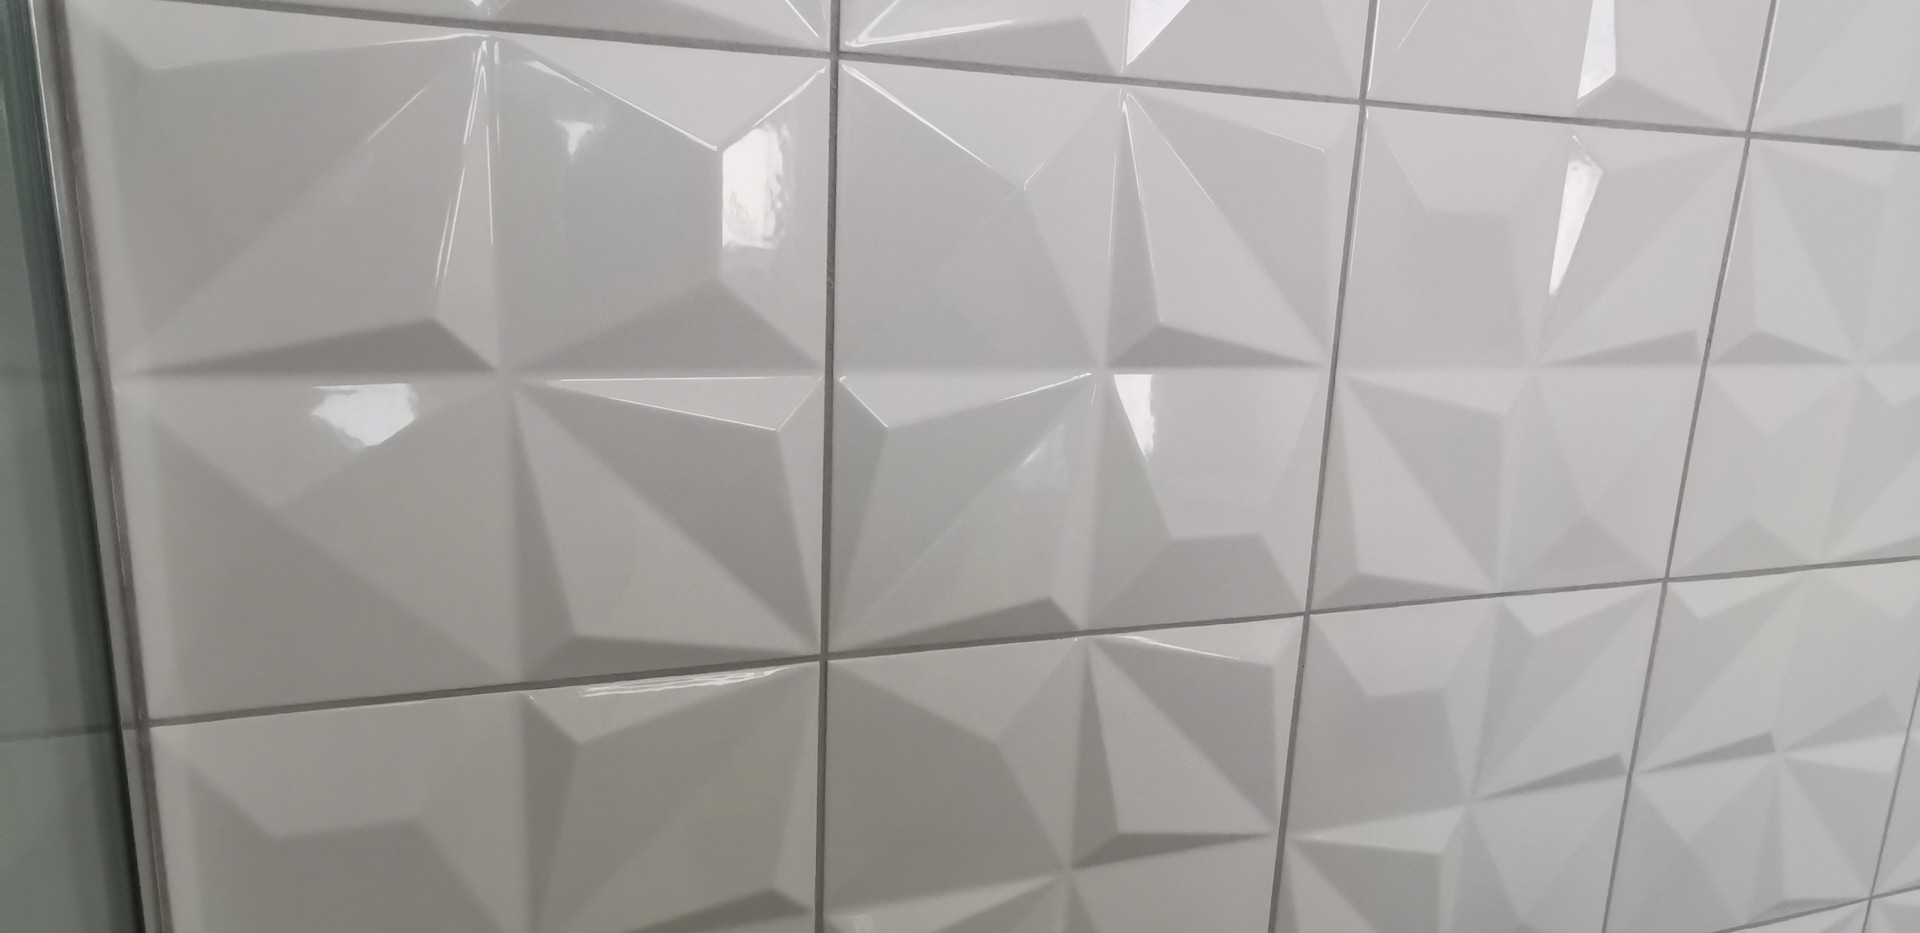 Multishapes White Gloss by Dune | Ceramic tiles made in Spain